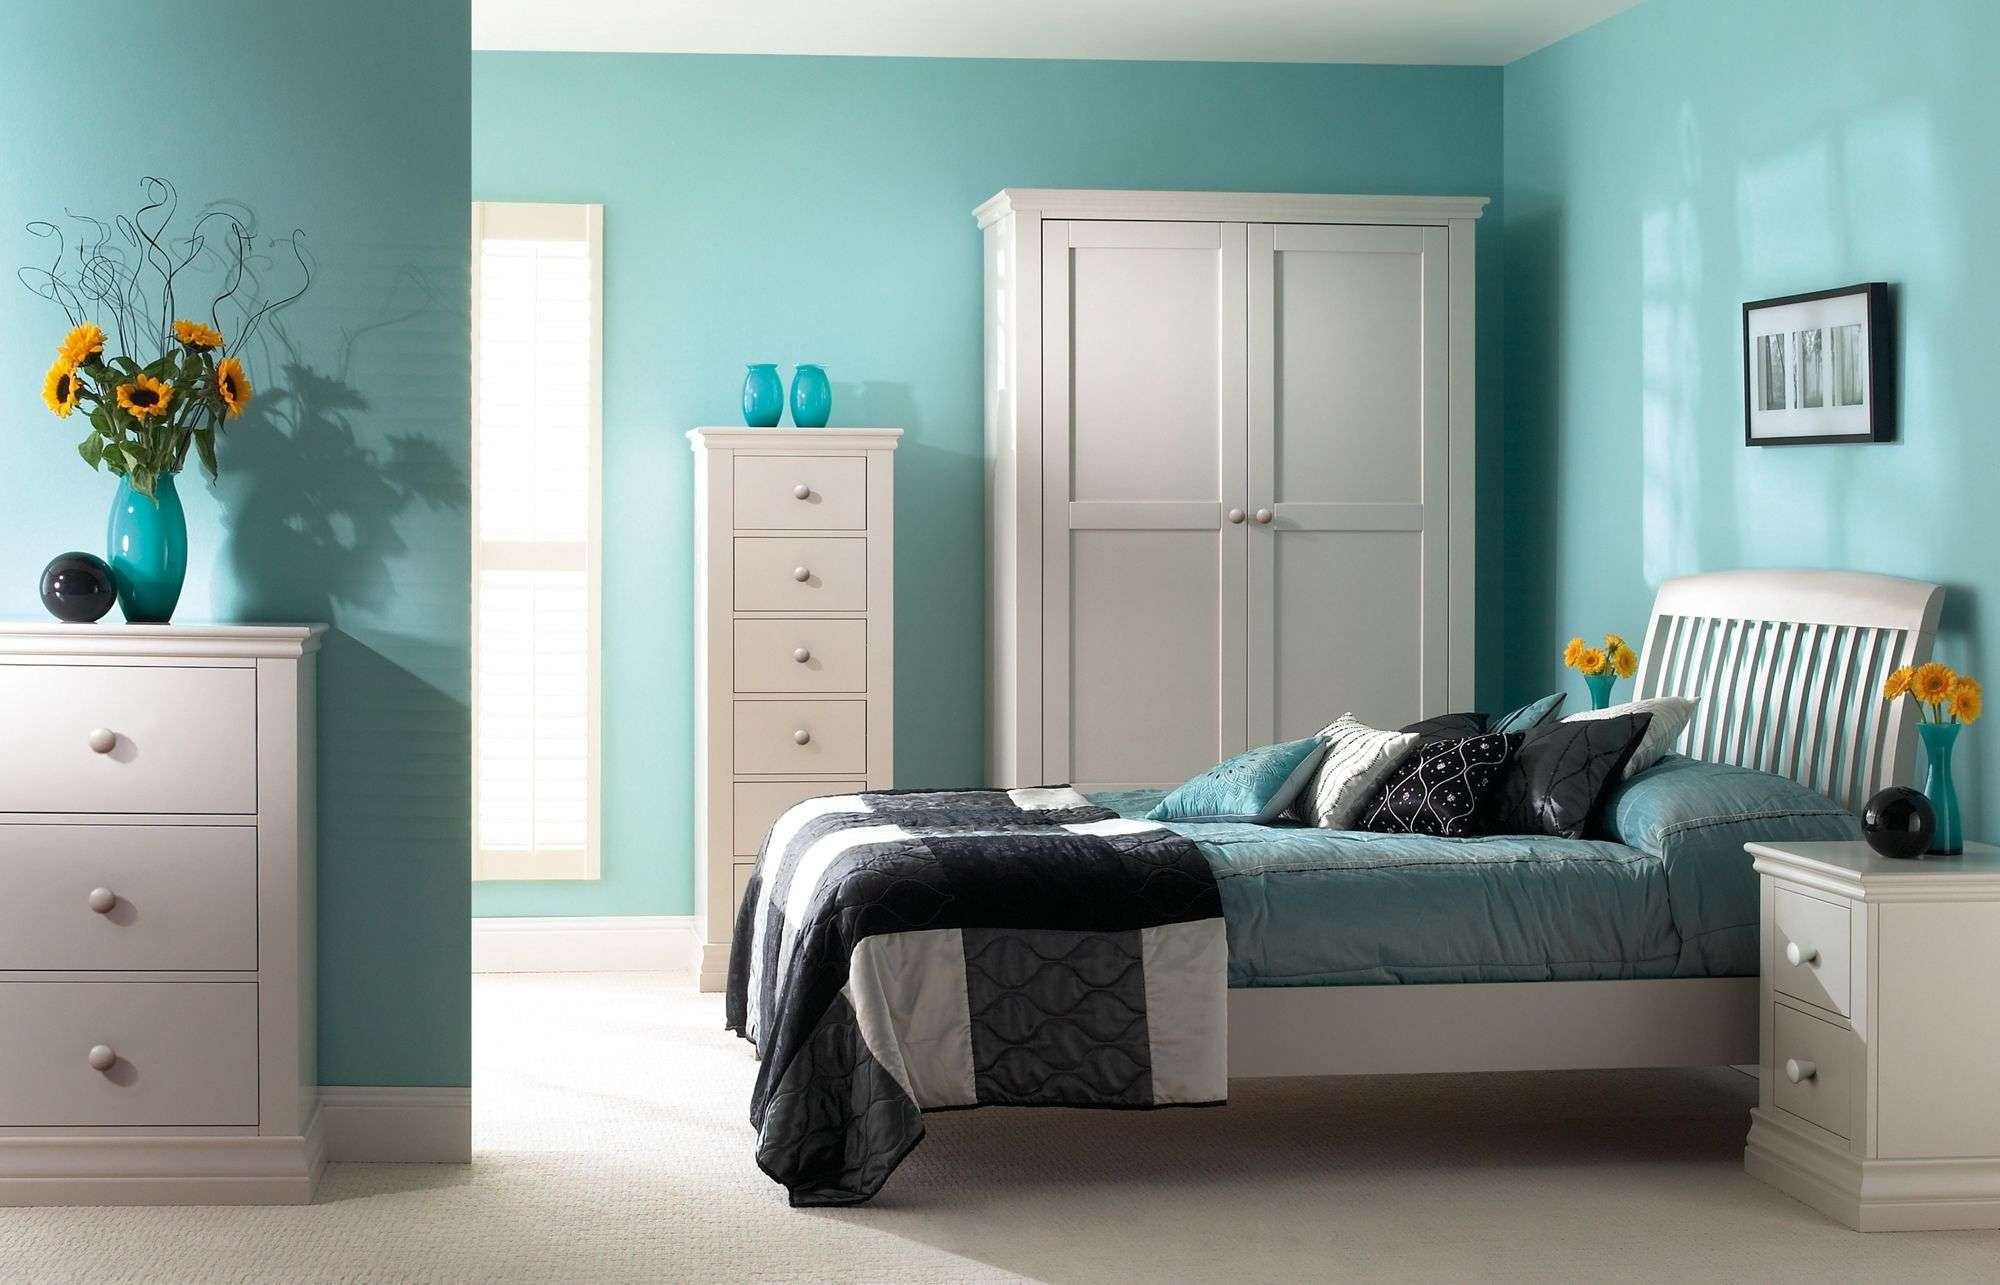 Adorable Design Of The Blue Tosca Wall Added With White Drawers And White Cabinets Ideas With White Wall As The Teenage Room Ideas